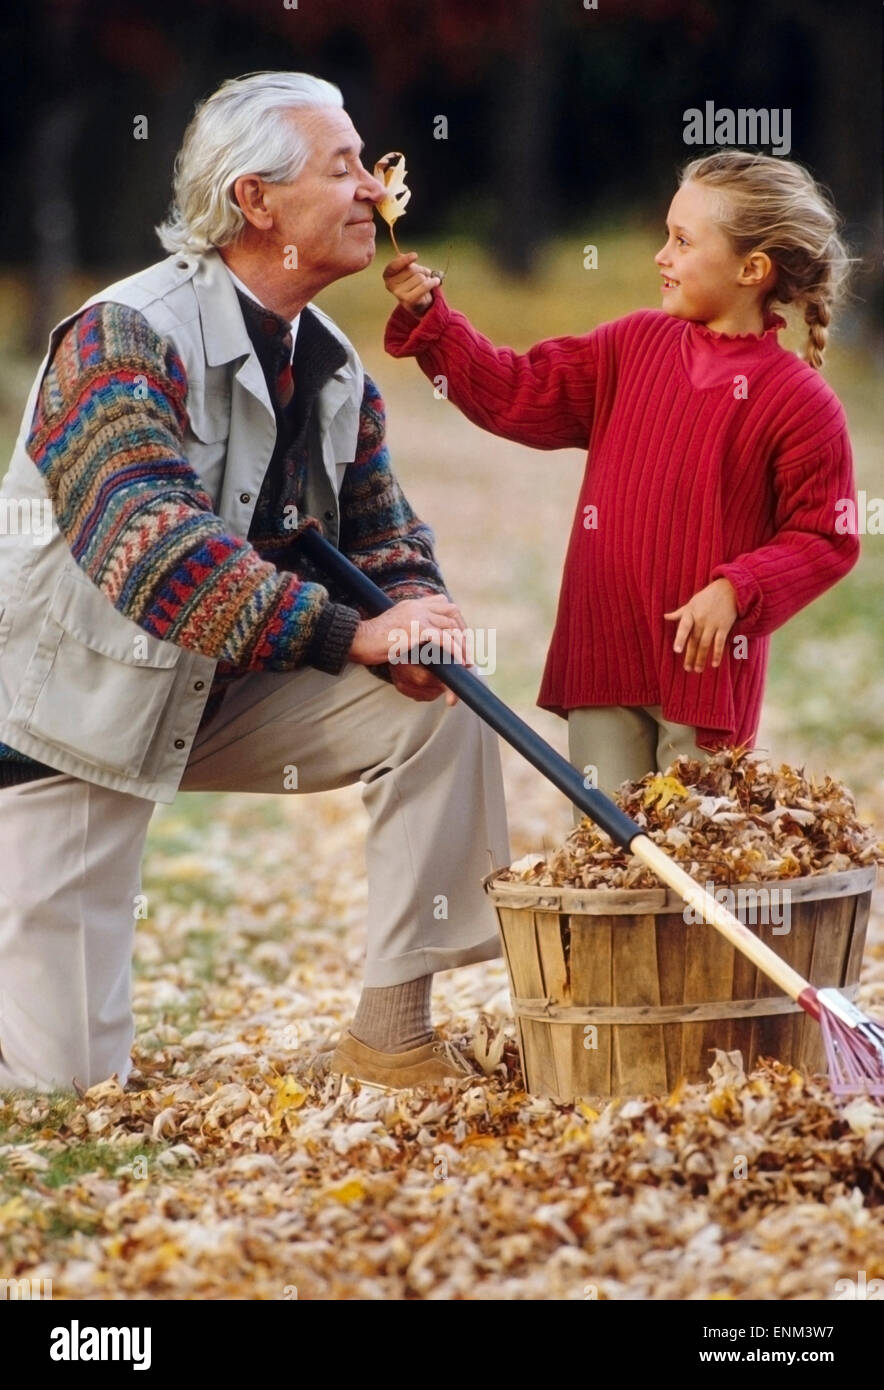 grandfather and granddaughter with leaves - Stock Image